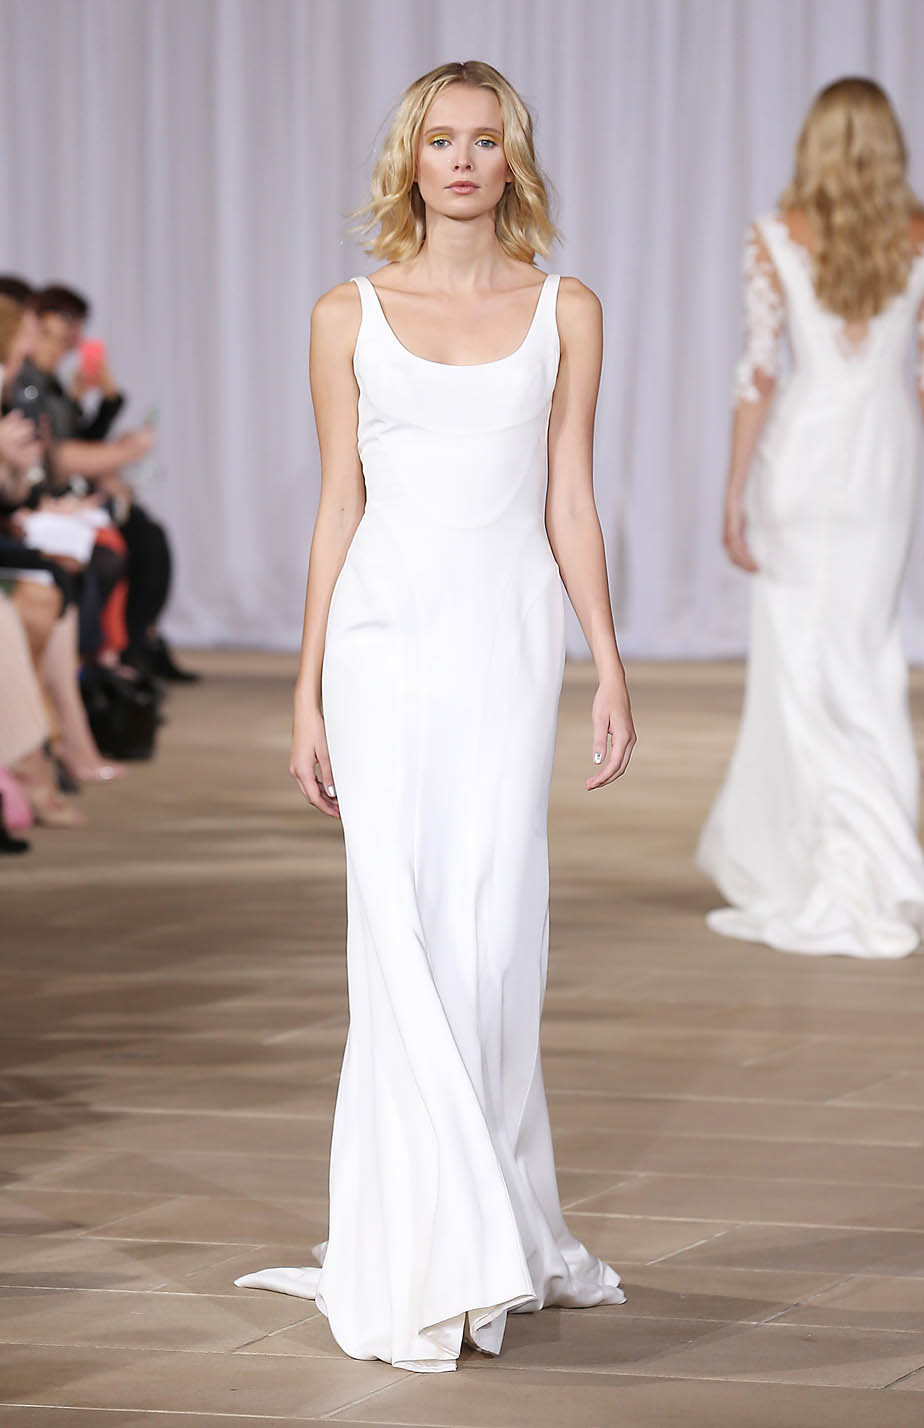 Silk Crepe Wedding Dress by Ines Di Santo - Perfect for Destination Wedding with a Royal Look